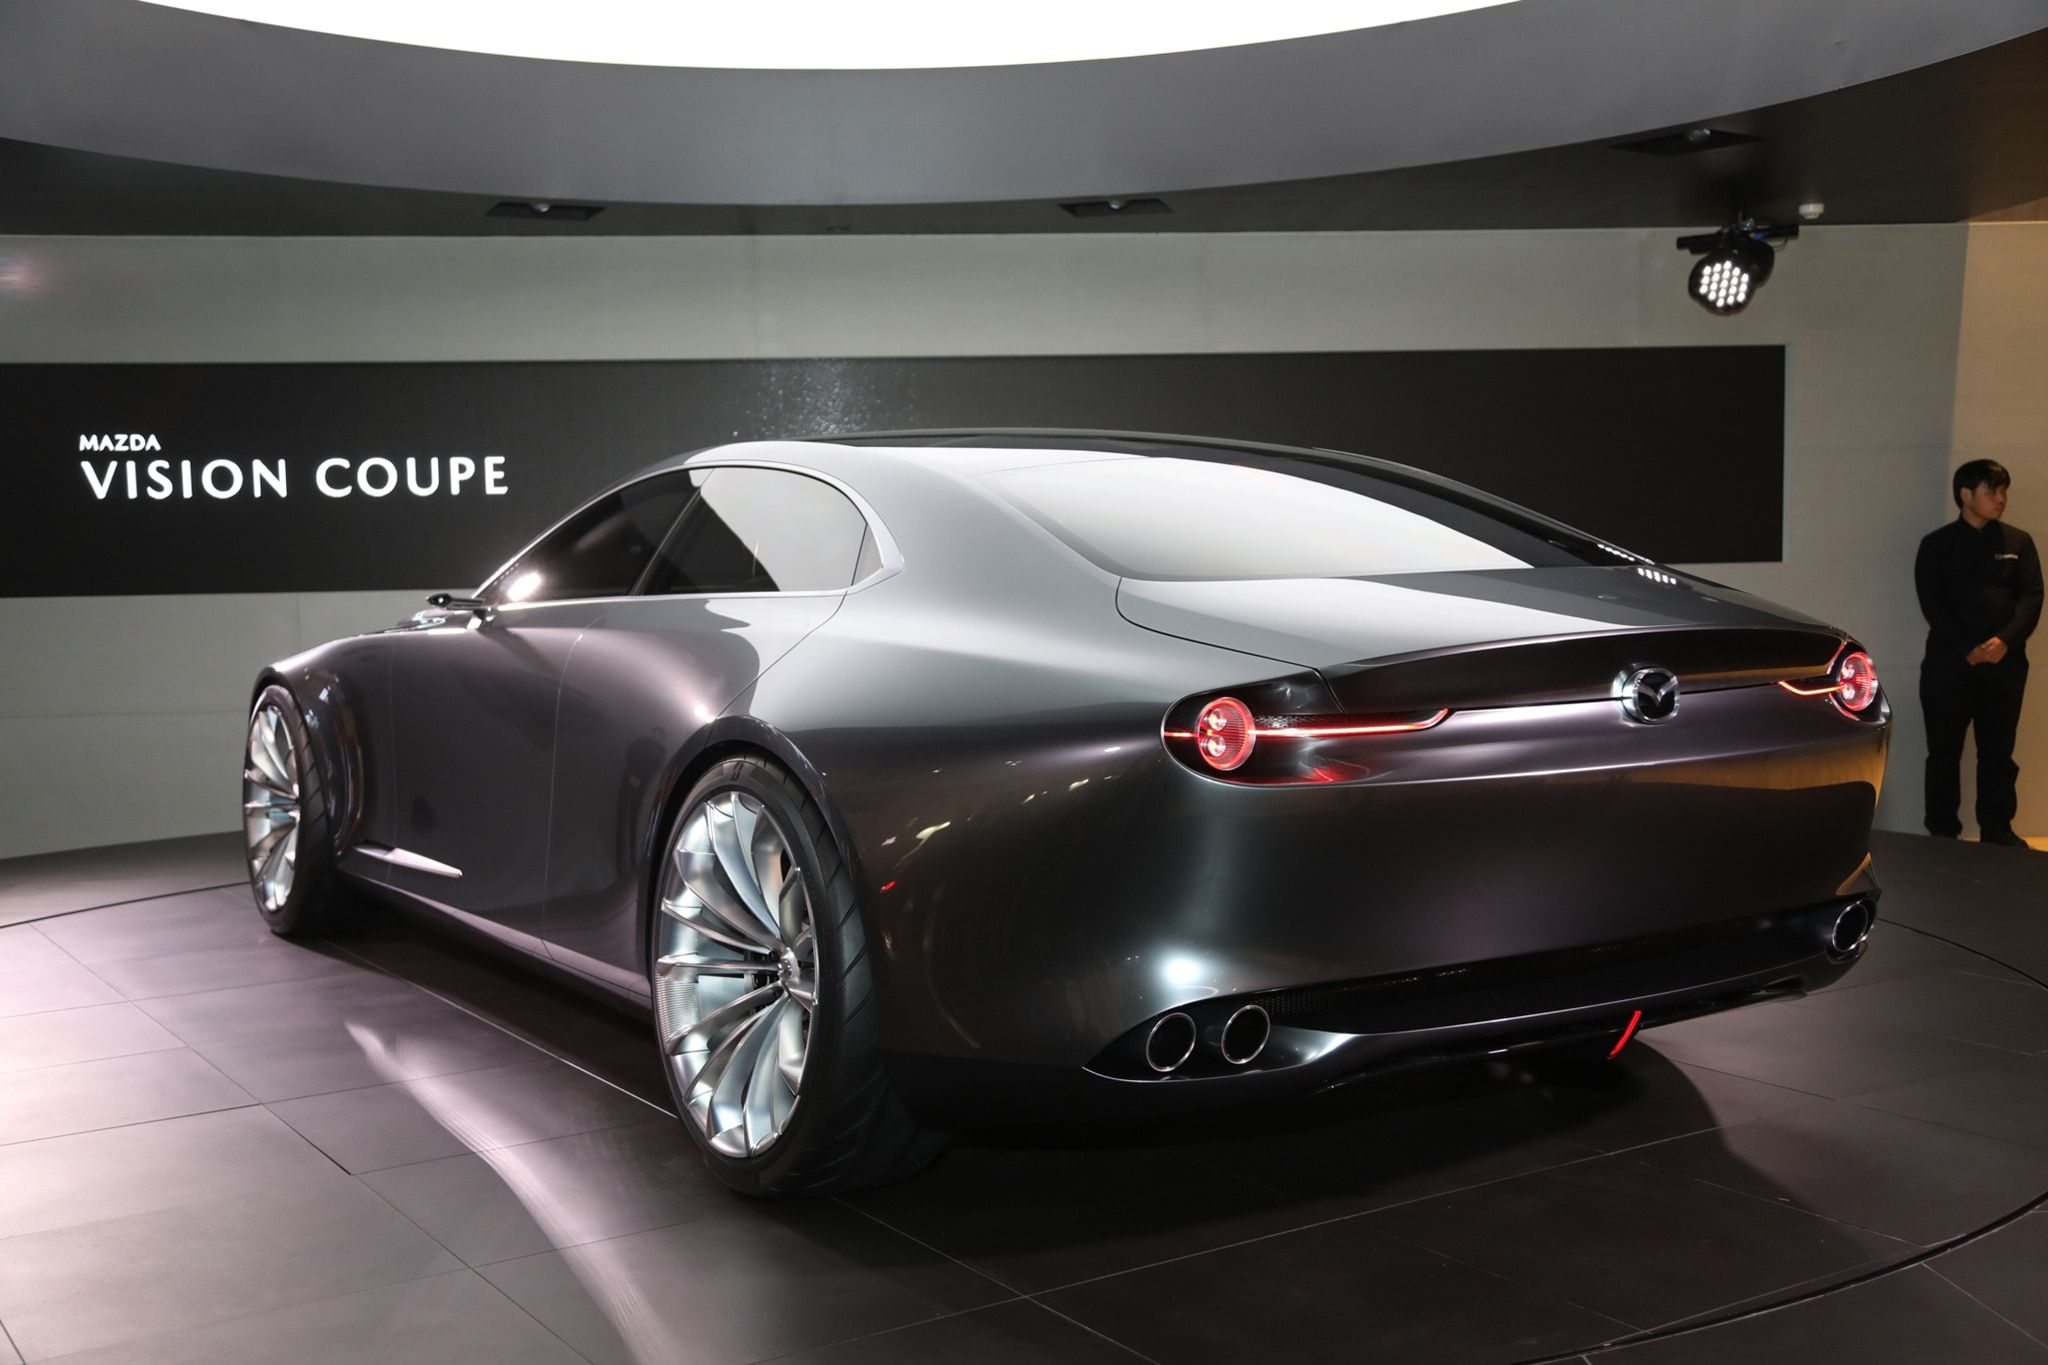 Mazda Vision Coupe 2020 Redesign And Release In 2020 Concept Cars Mazda Car